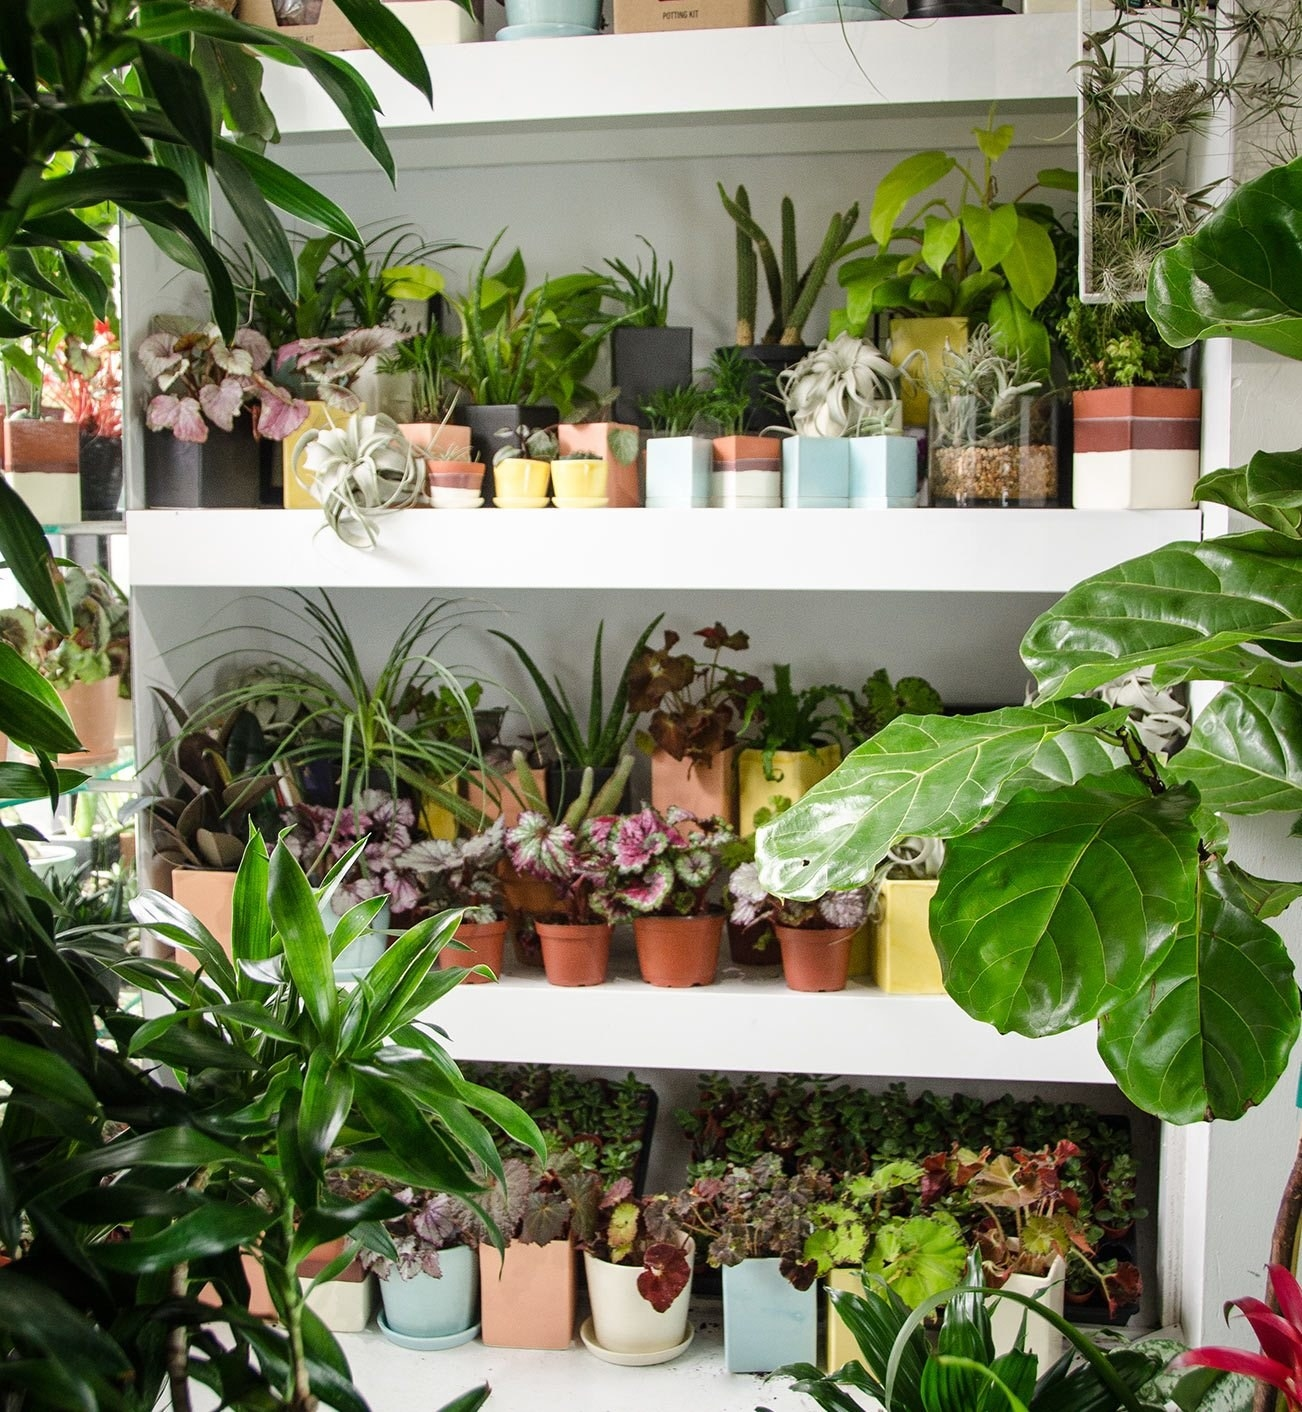 Unusual House Plants For Sale 18 Of The Best Places To Buy Houseplants Online